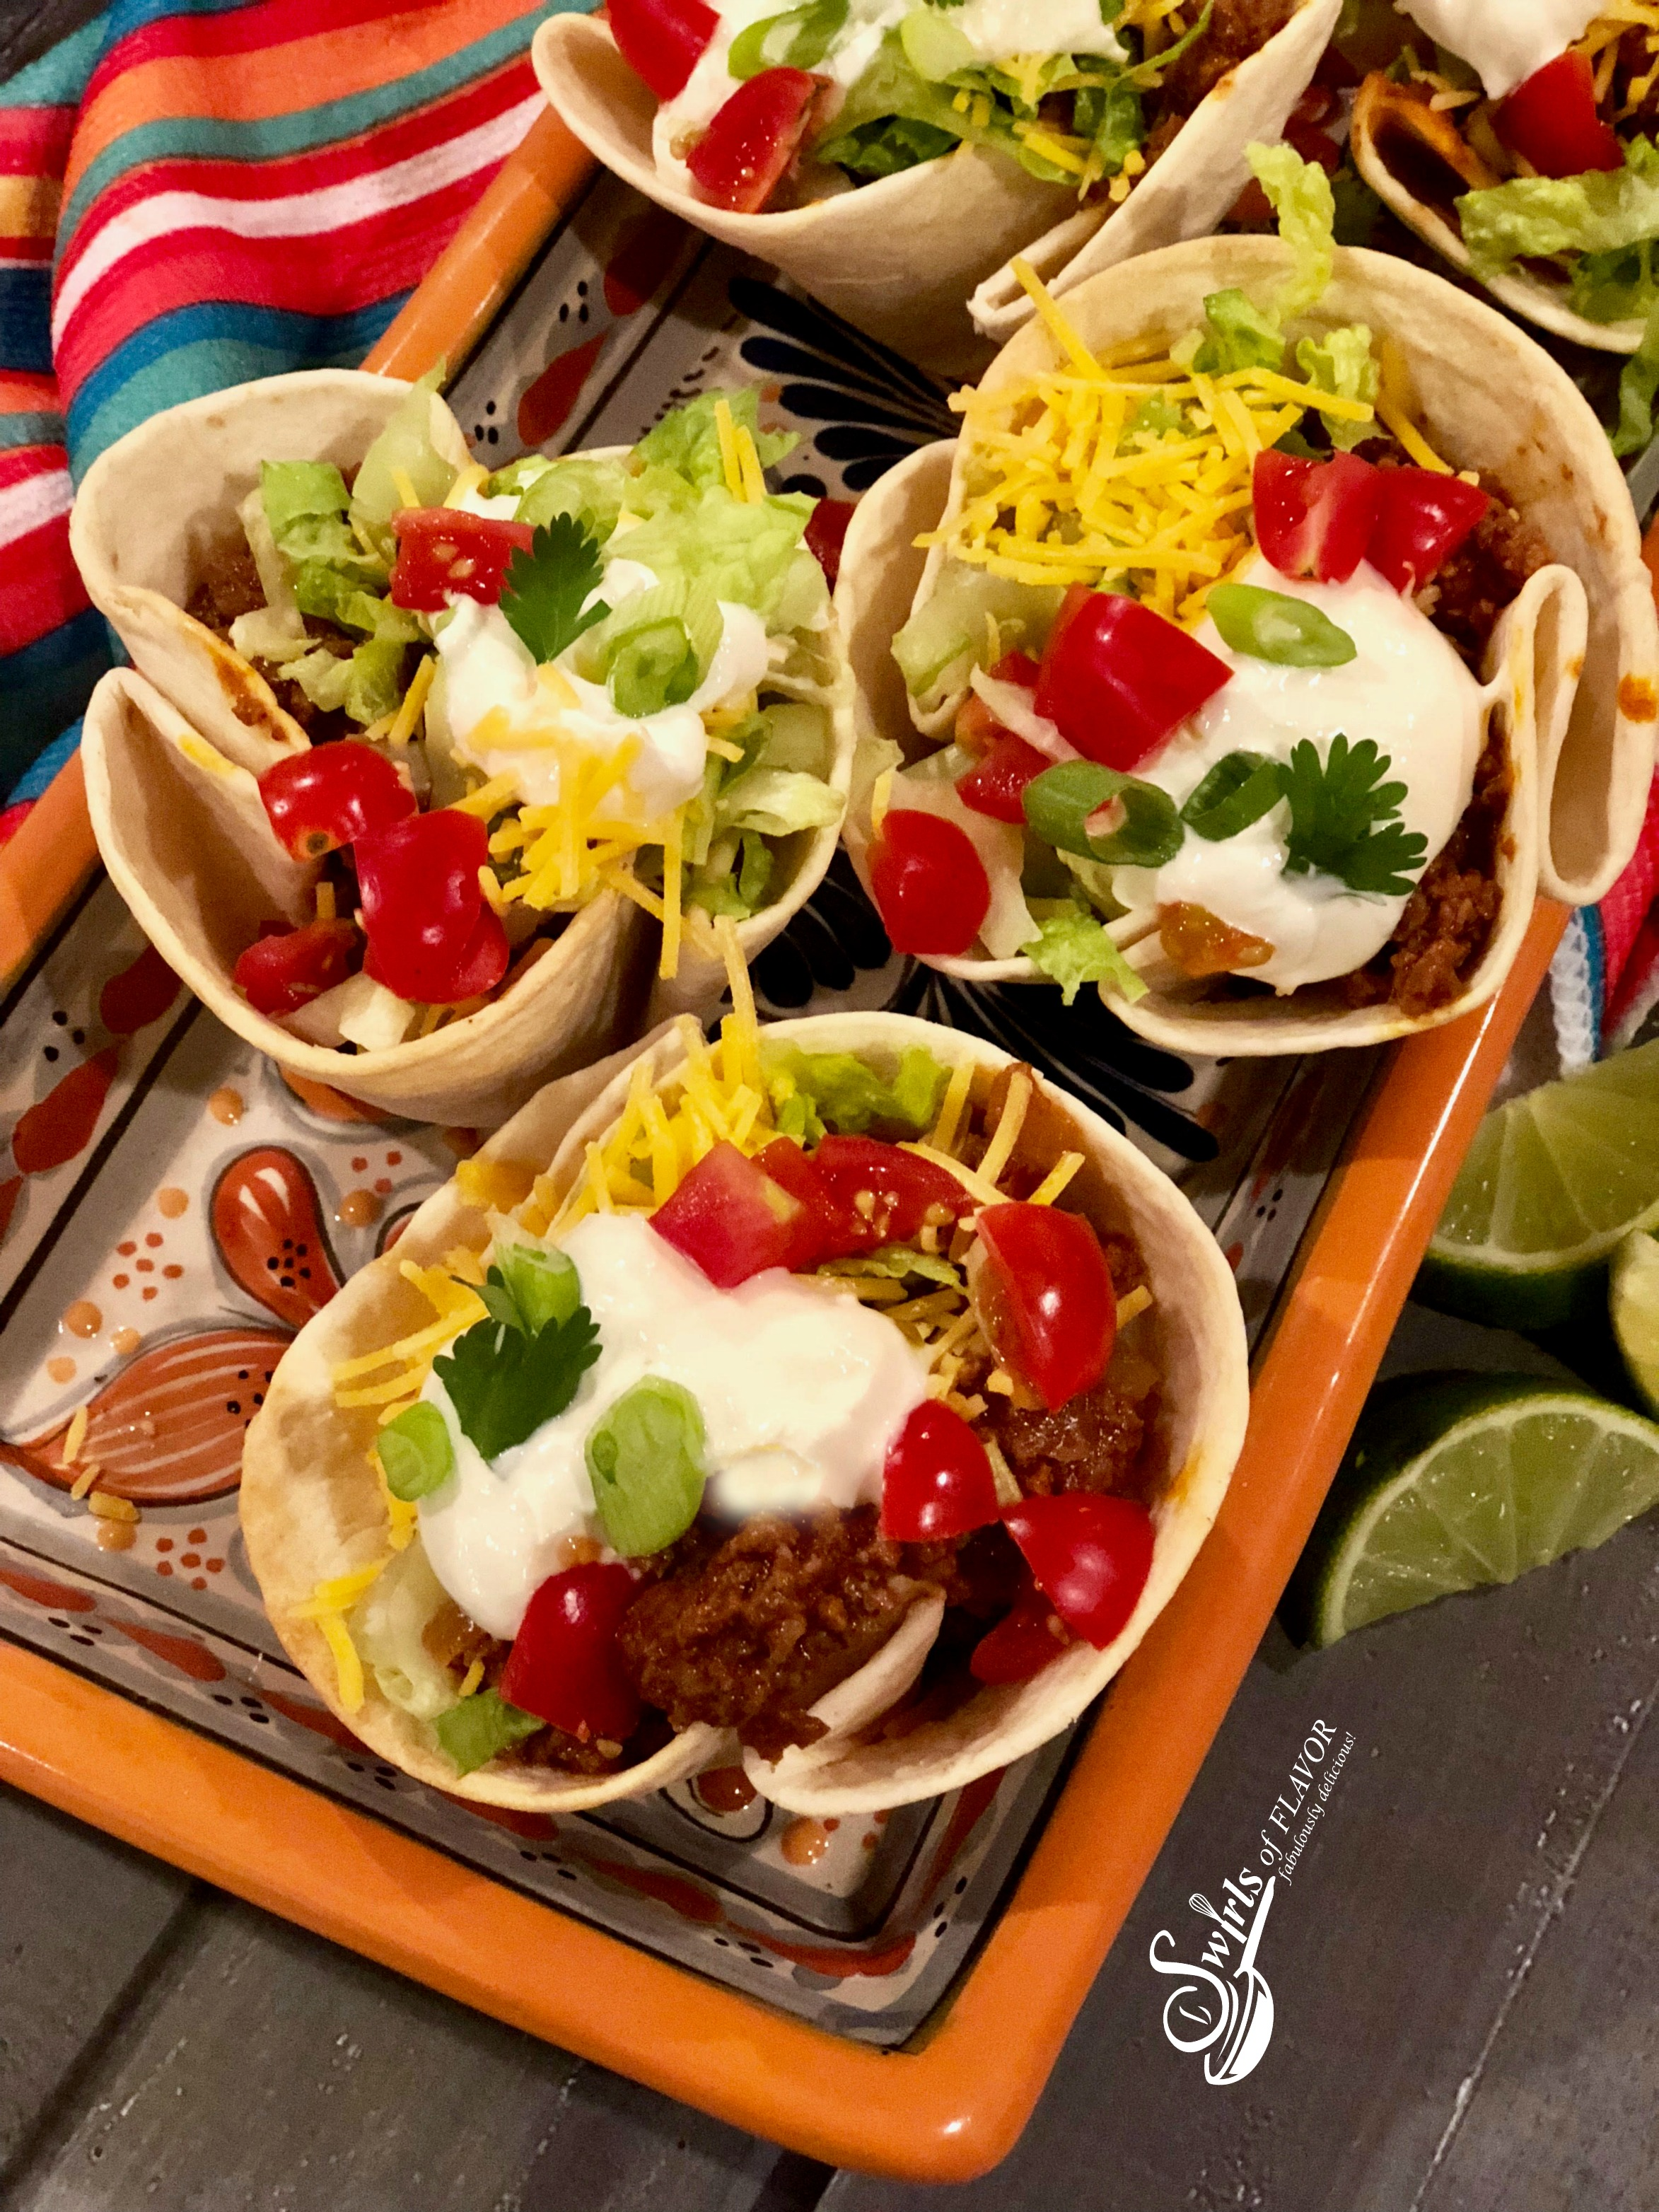 Beef taco cups with taco toppings in colorful dish